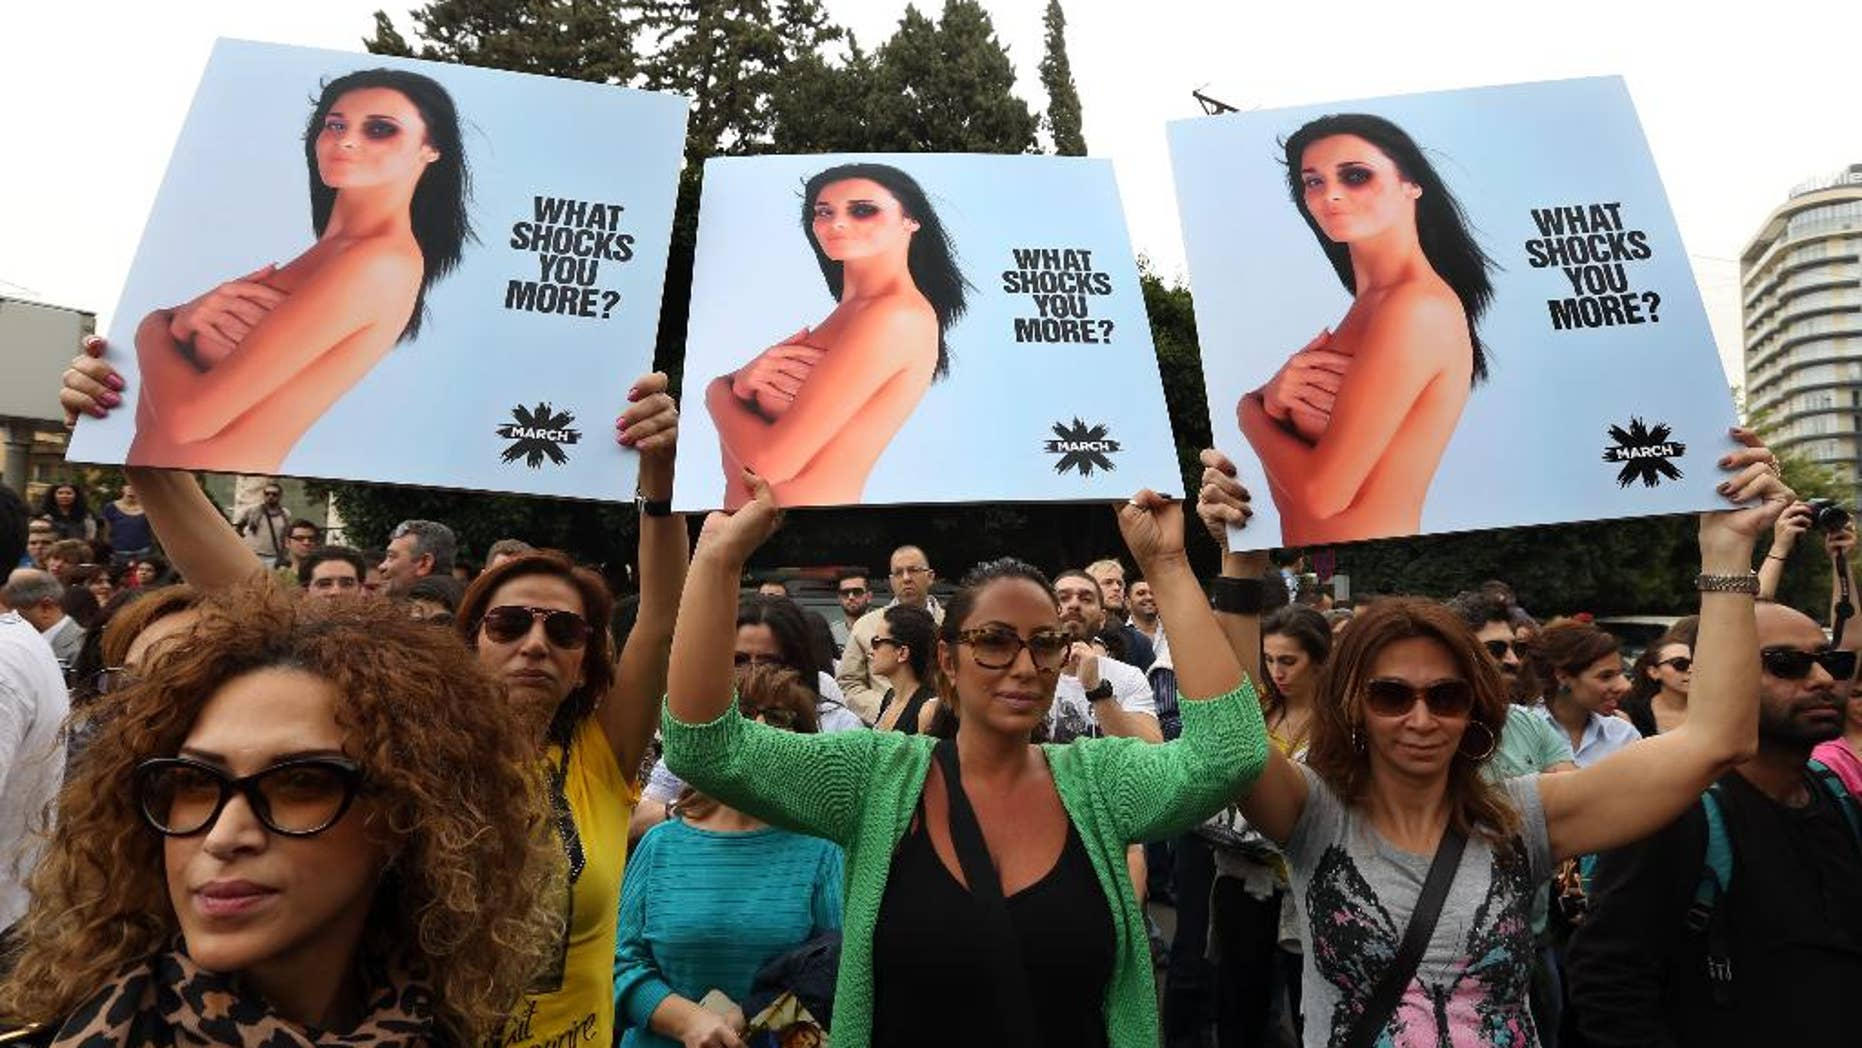 Lebanese women hold posters to mark International Woman's Day during a rally of thousands demanding that parliament approves a law that protects women from domestic violence, in Beirut, Lebanon, Saturday, March. 8, 2014. Although Lebanon appears very progressive on women rights compared to other countries in the Middle East, domestic violence remains an unspoken problem and the nation's parliament has yet to vote on a bill protecting women's rights nearly three years after it was approved by the Cabinet. (AP Photo/Bilal Hussein)